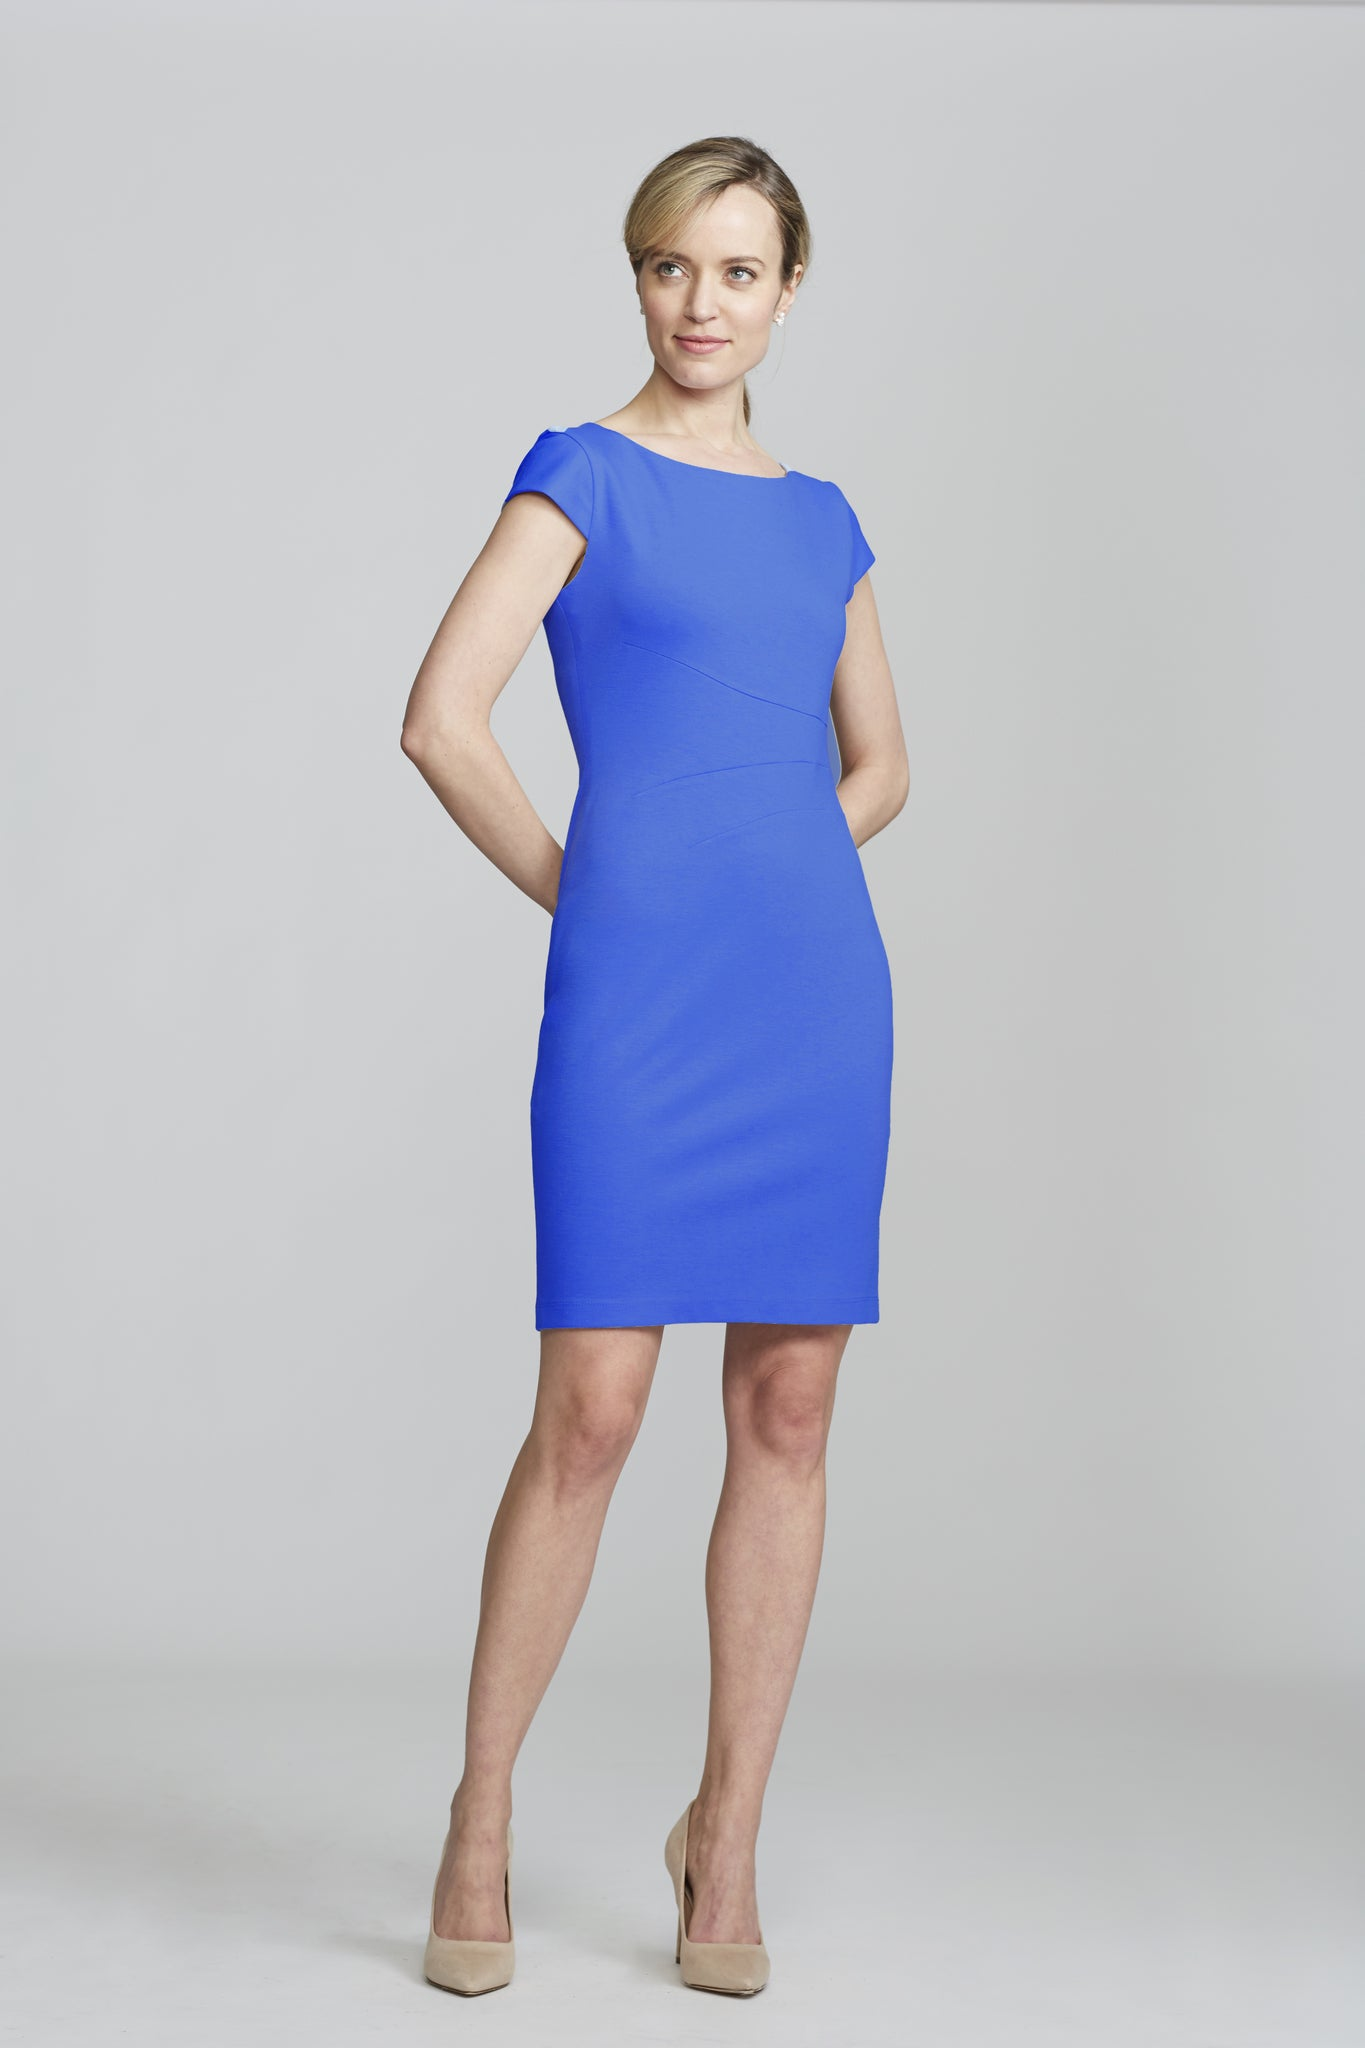 Women's Verana Dress in Lapis Blue | Nora Gardner Front